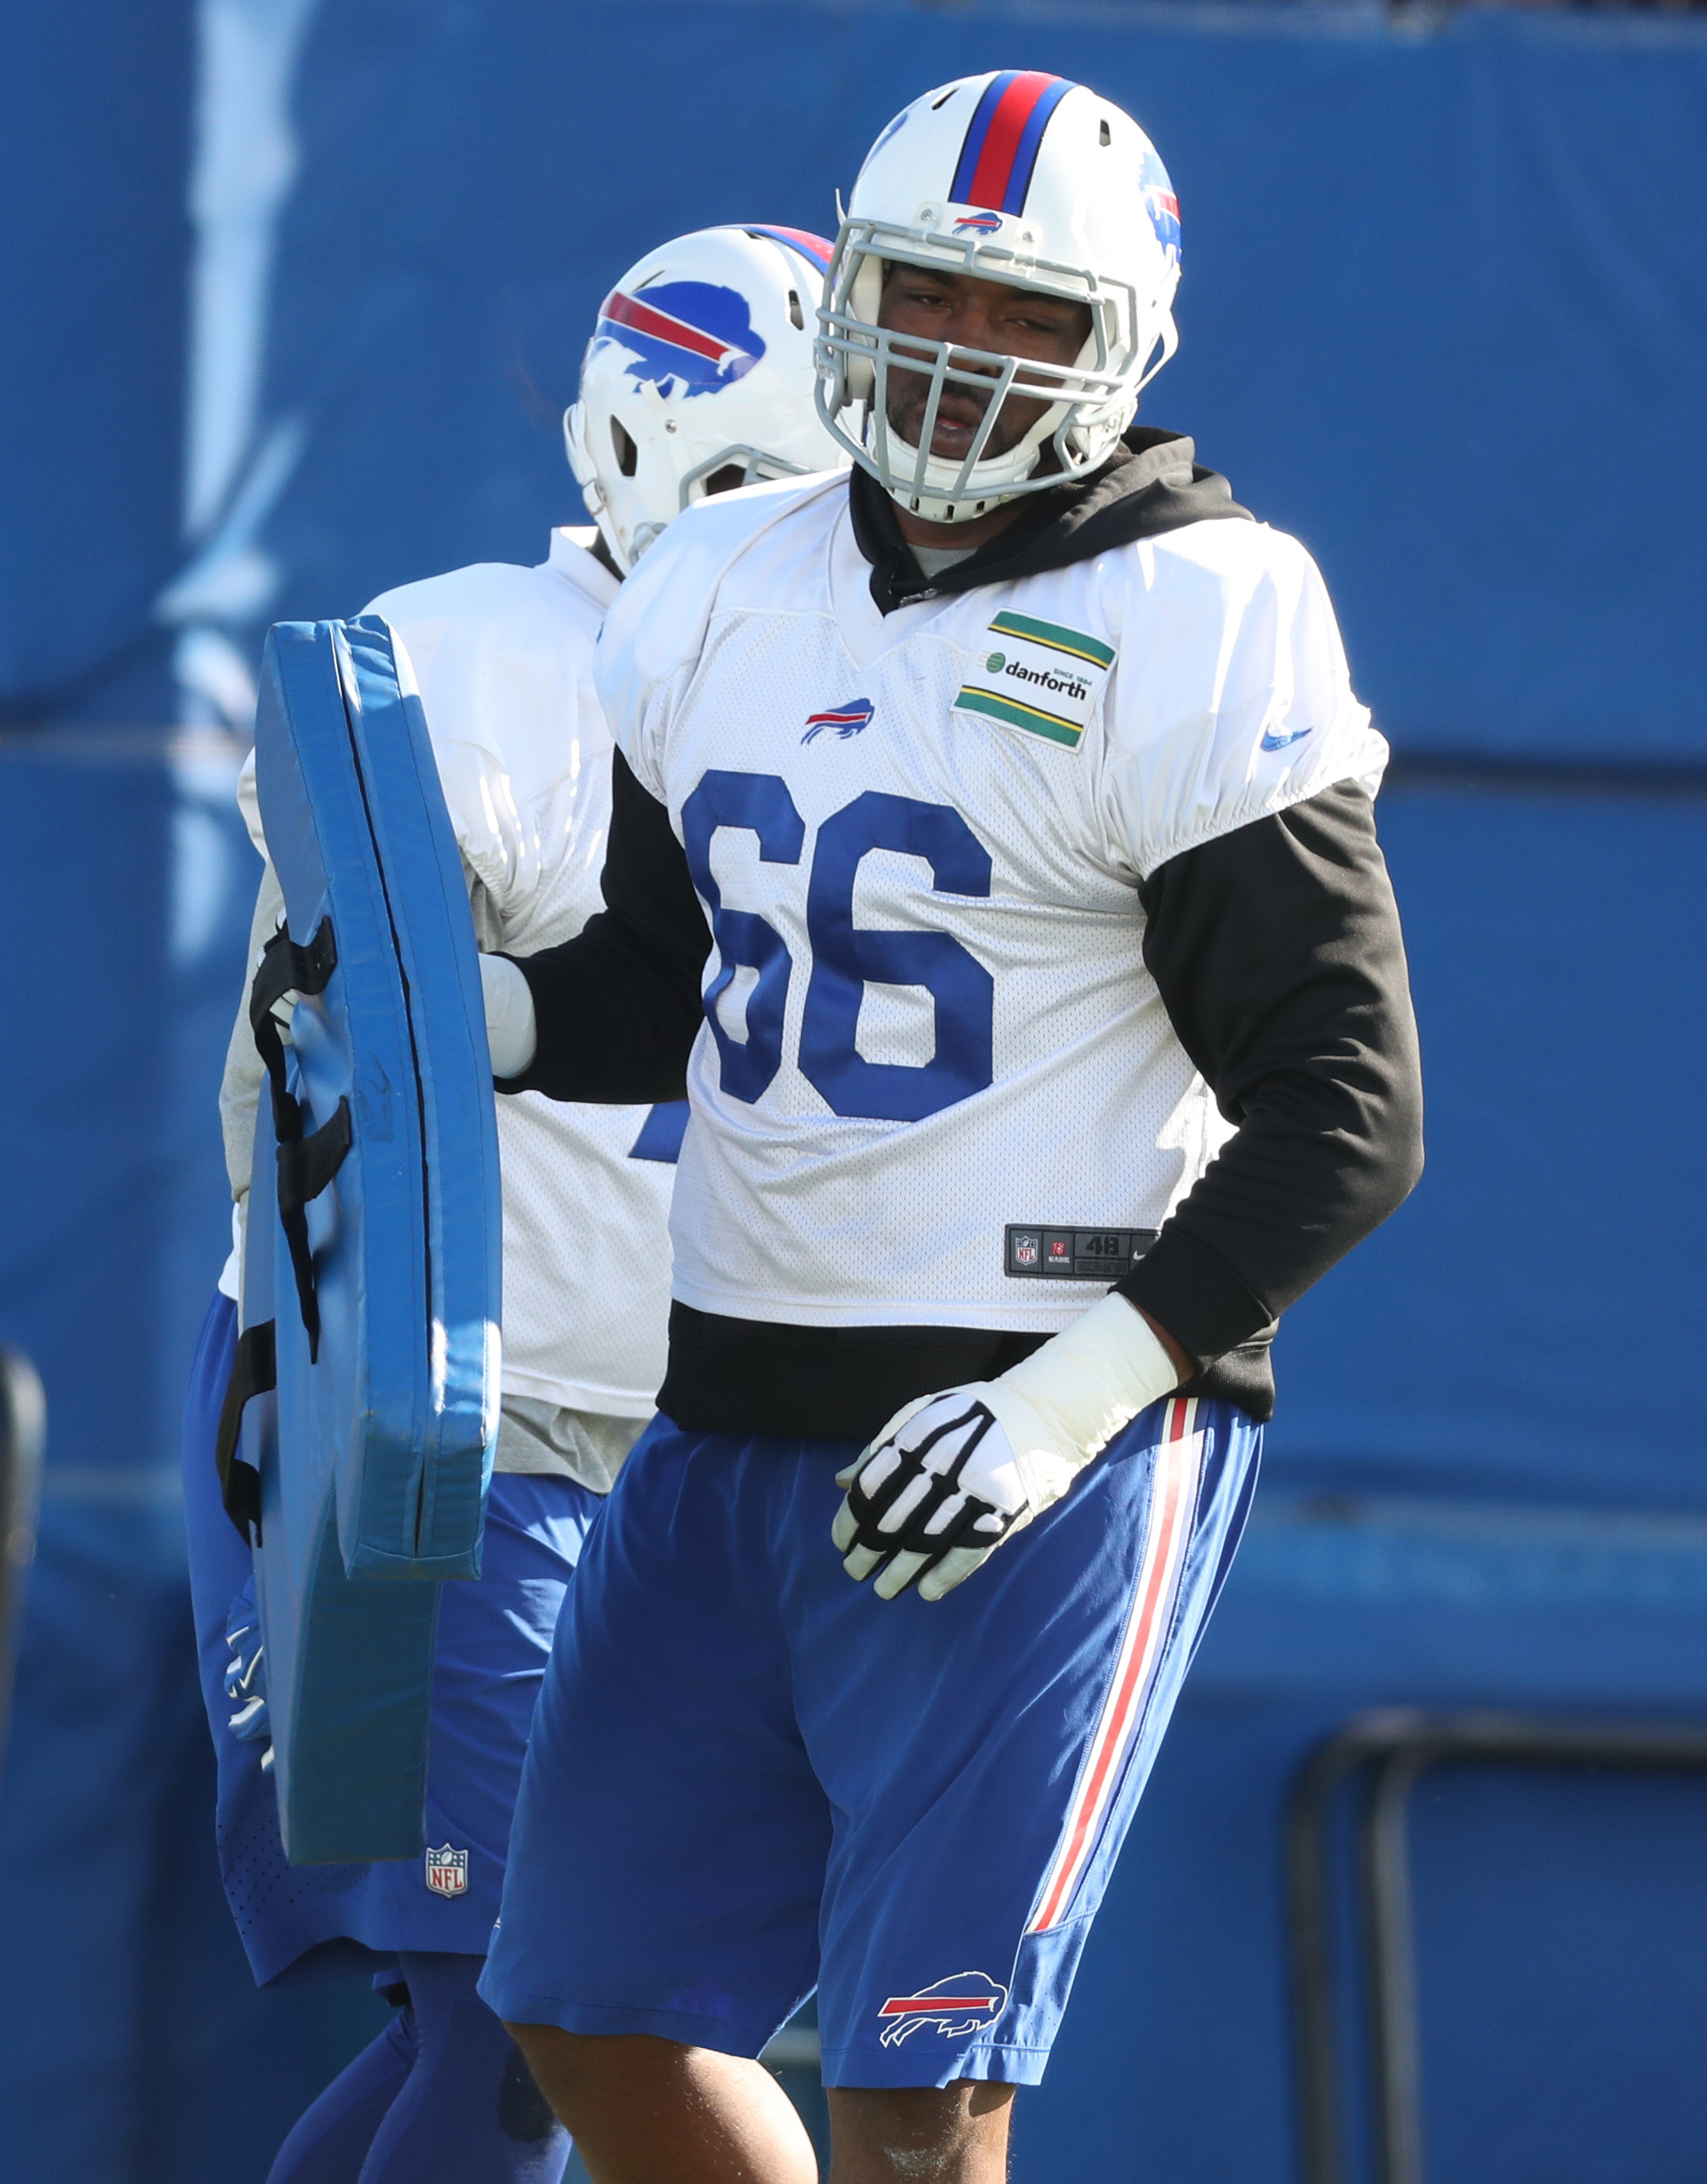 Buffalo Bills tackle Seantrel Henderson (66) was given a 10-game NFL suspension Tuesday. (James P. McCoy/Buffalo News)